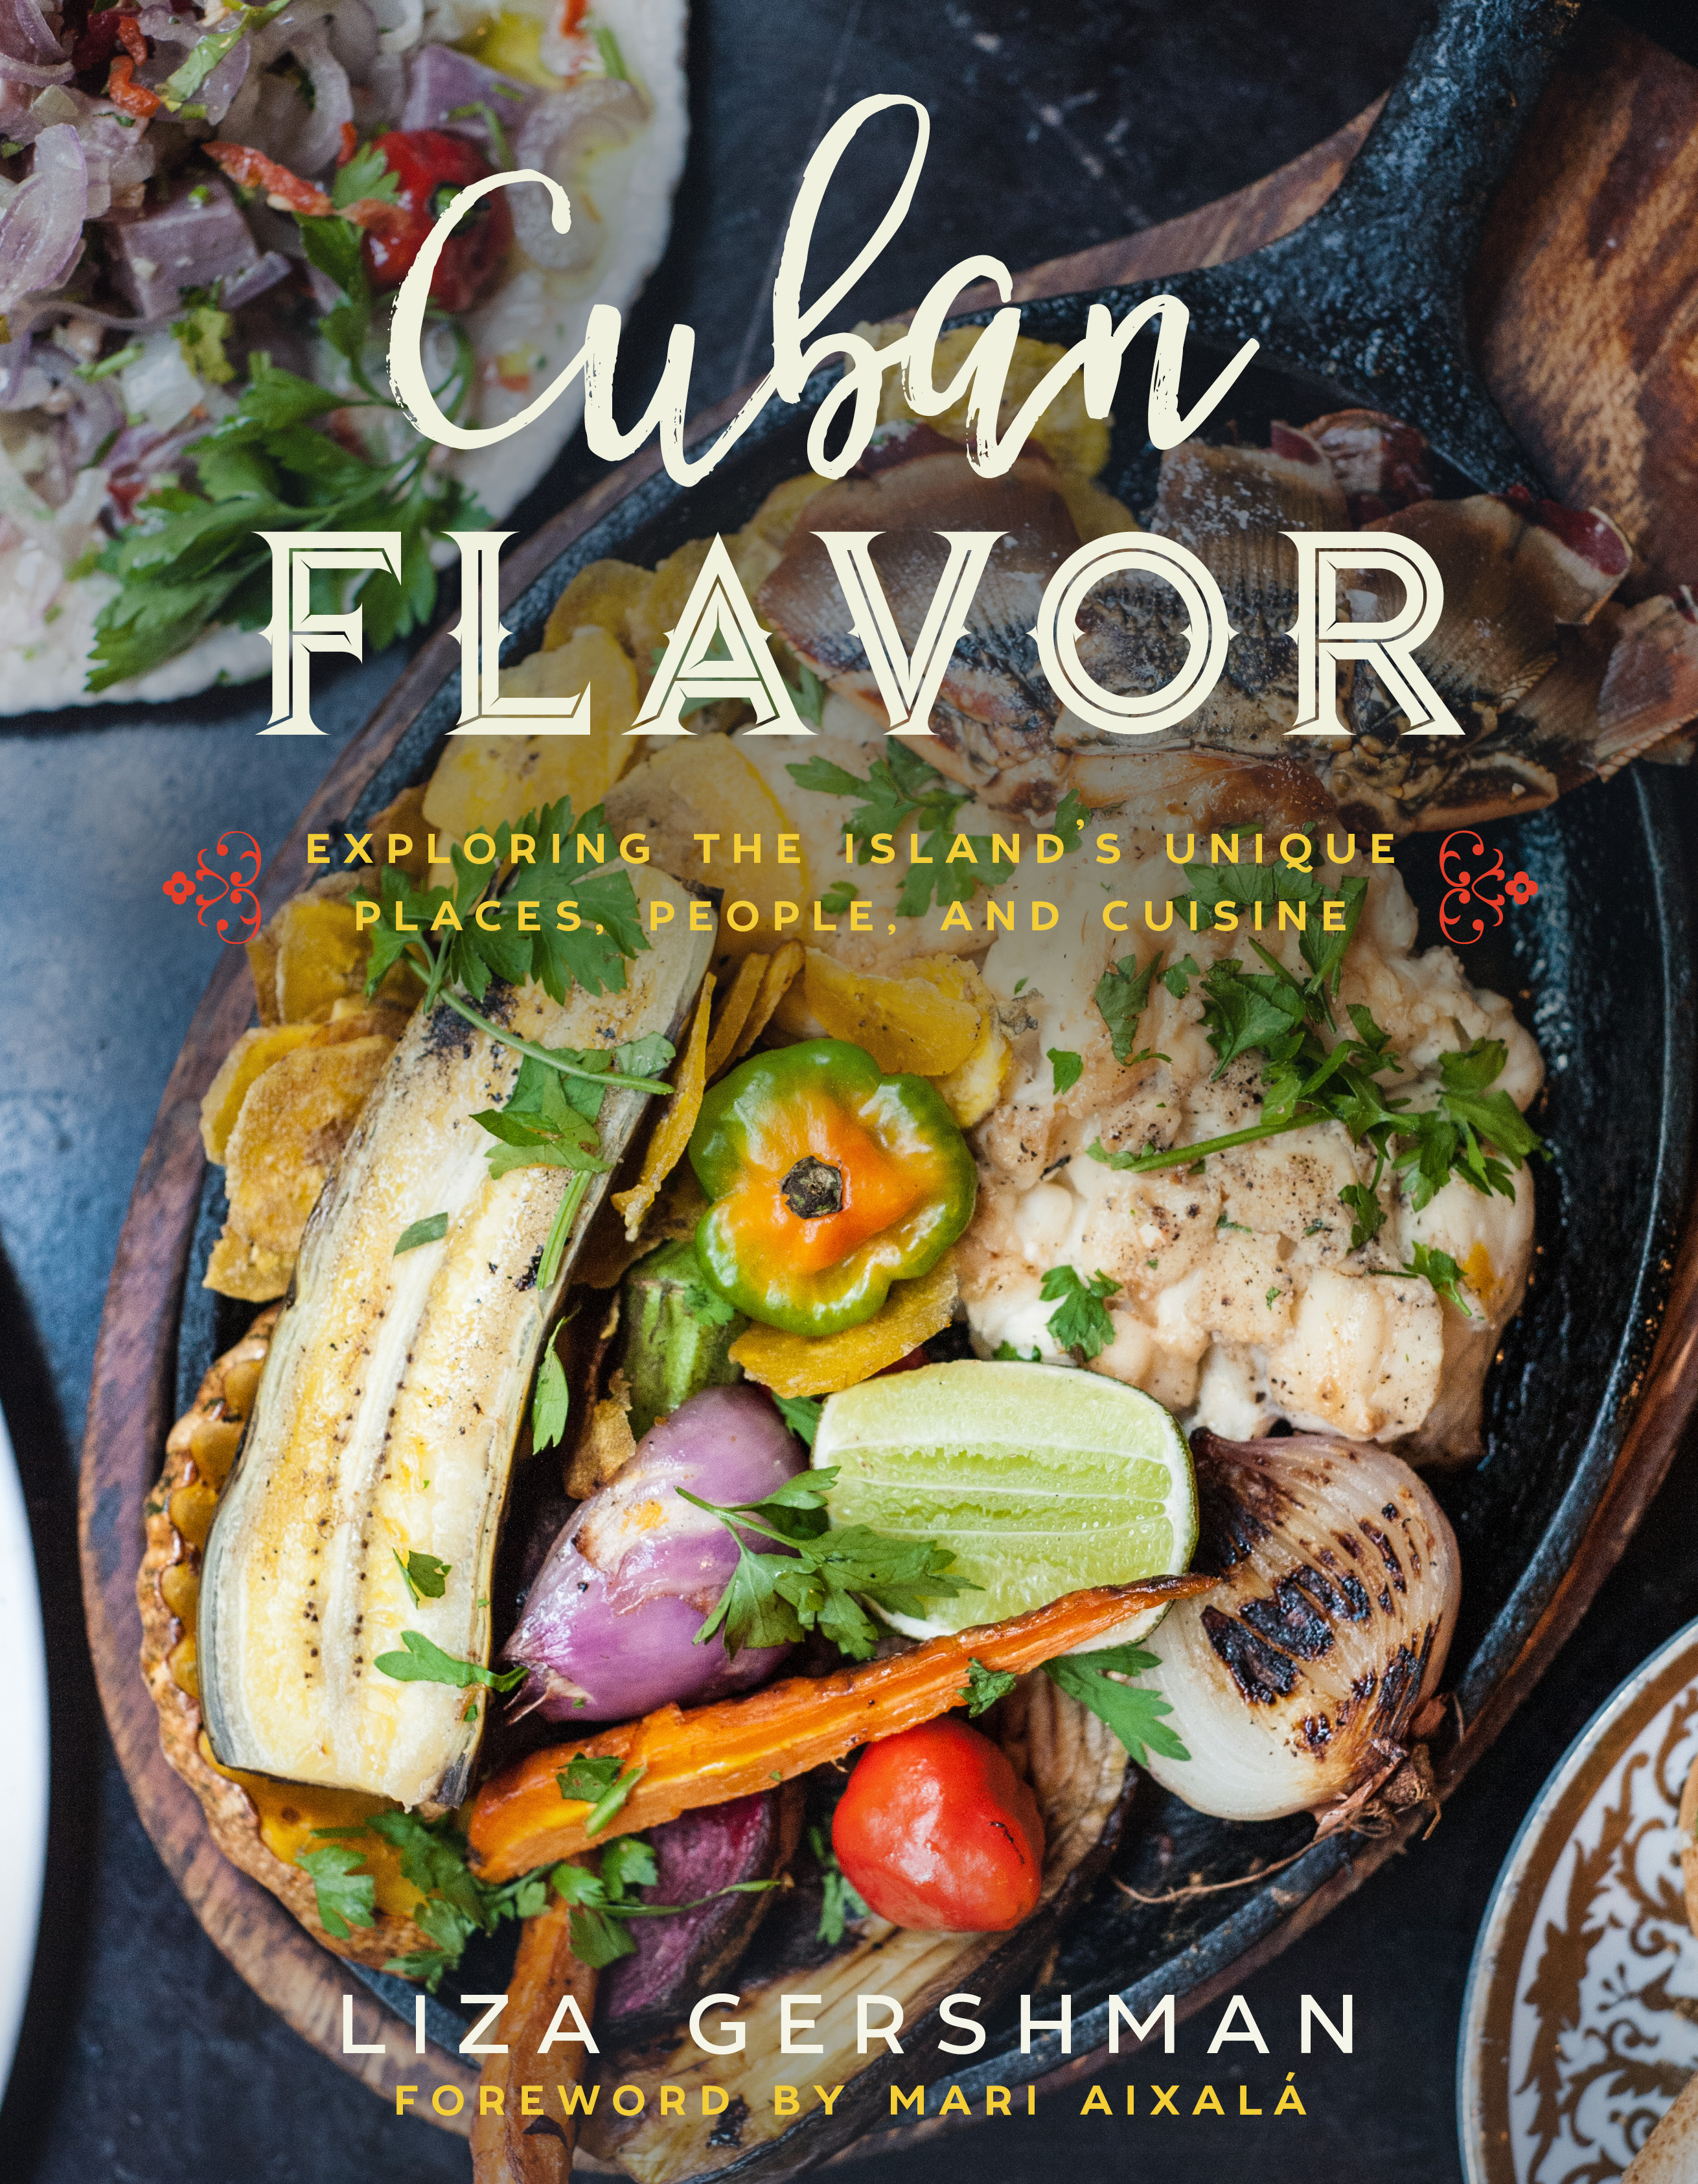 Book Launch: Cuban Flavor: Exploring the Island's Unique Places, People, and Cuisine by Liza Gershman